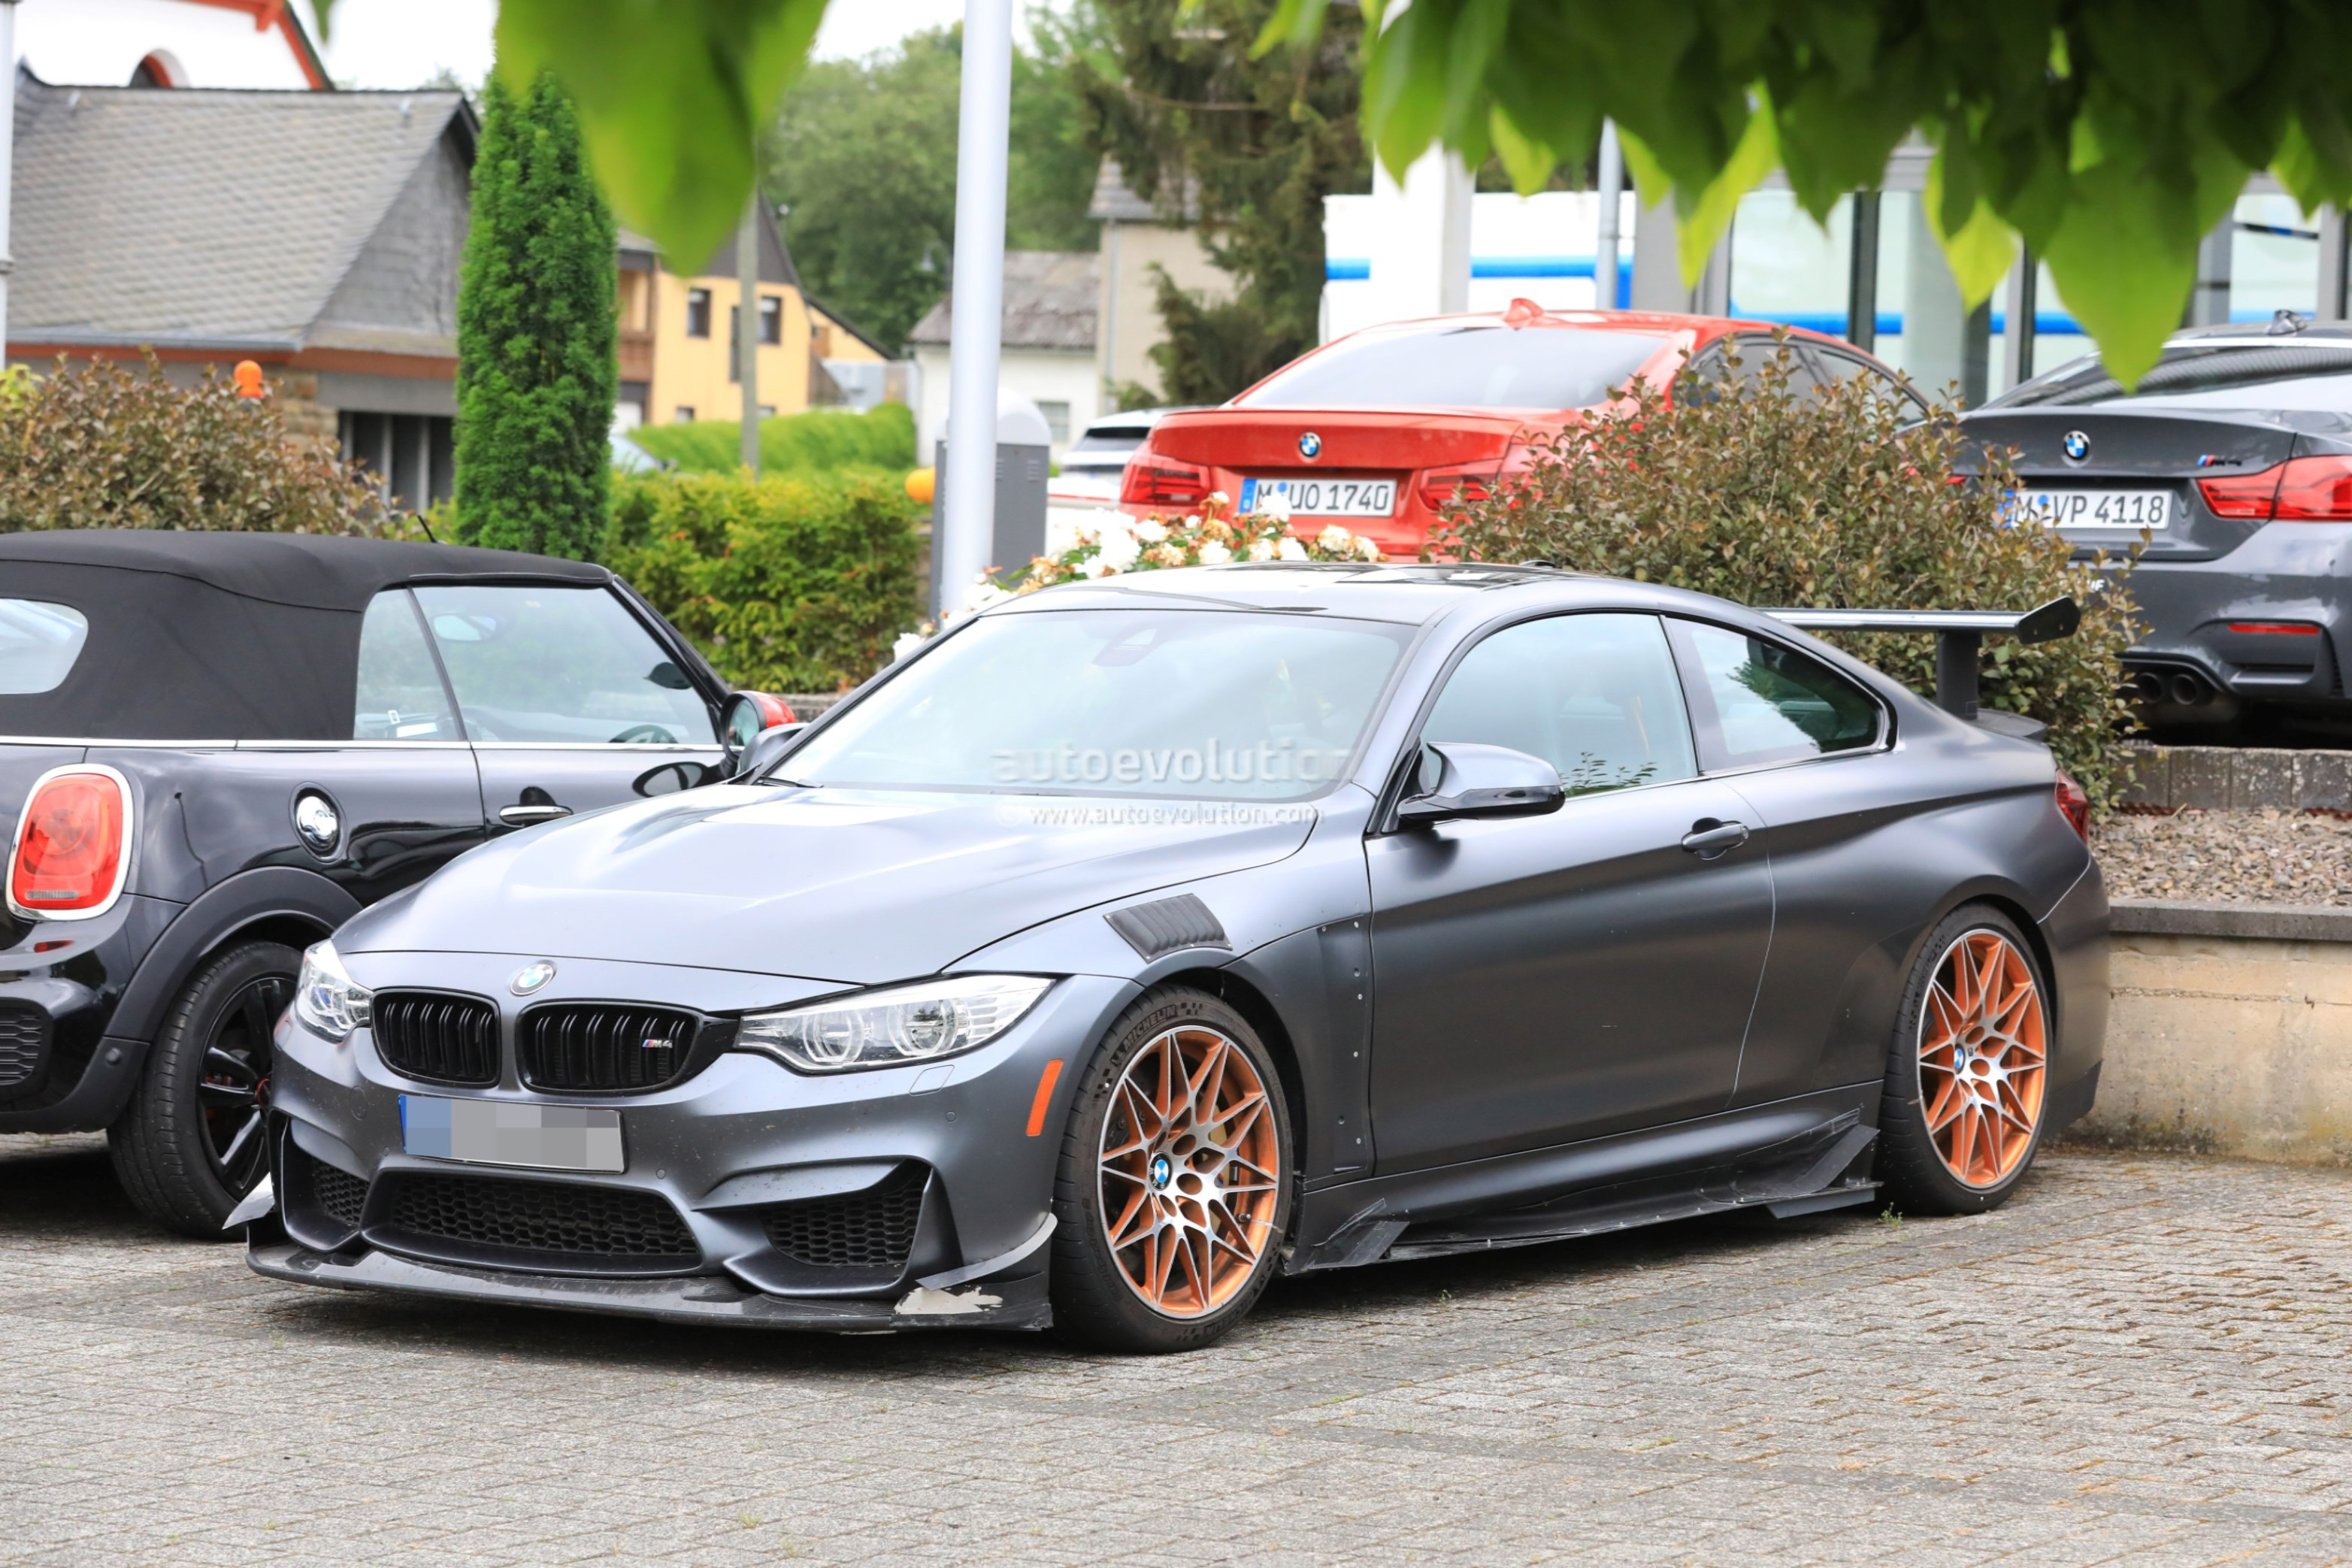 Could This Prototype Be the 2019 BMW M4 CSL? - autoevolution